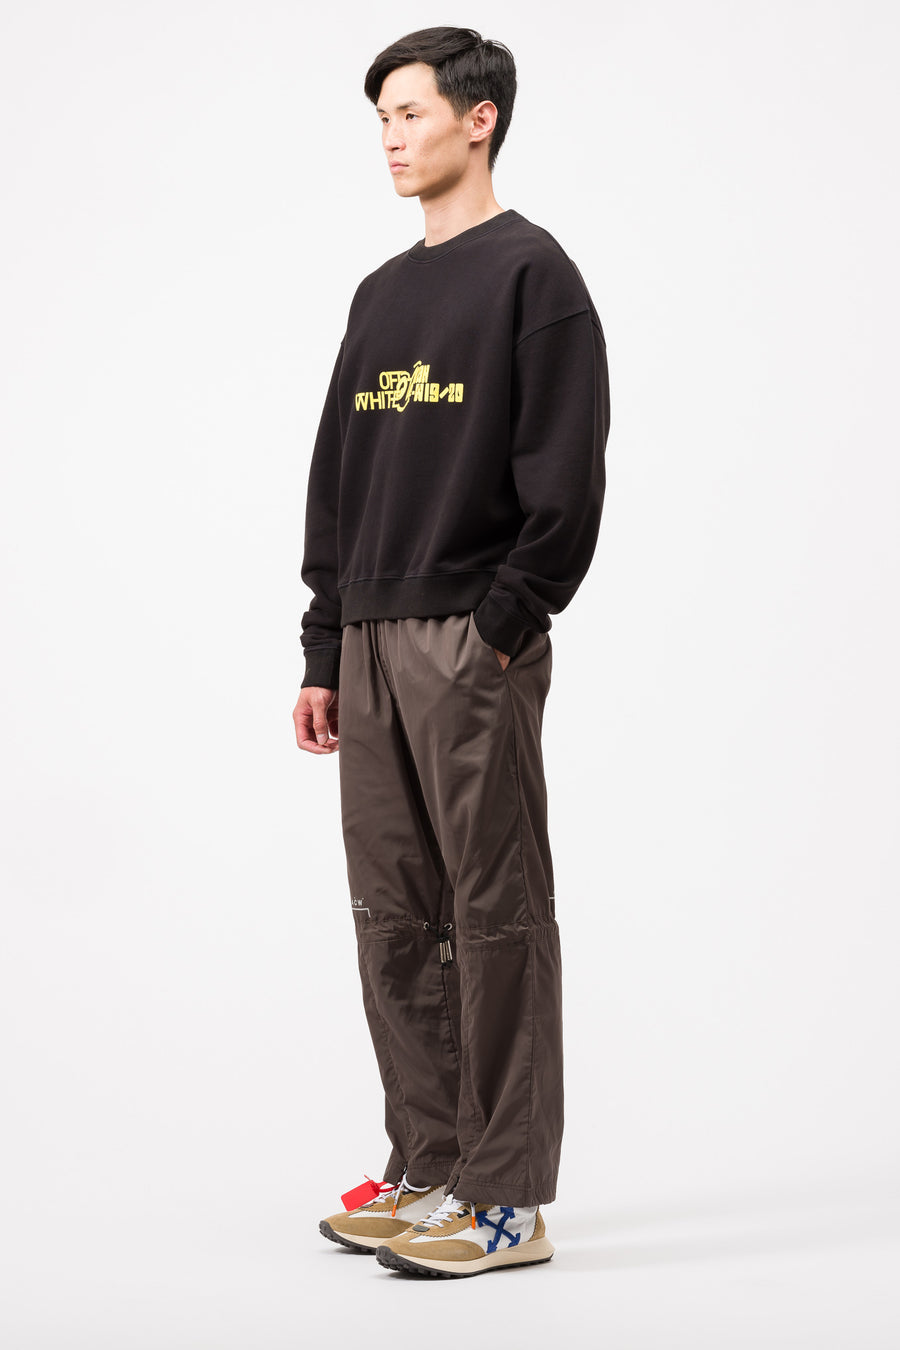 Off-White Halftone Over Crewneck in Black/Yellow - Notre